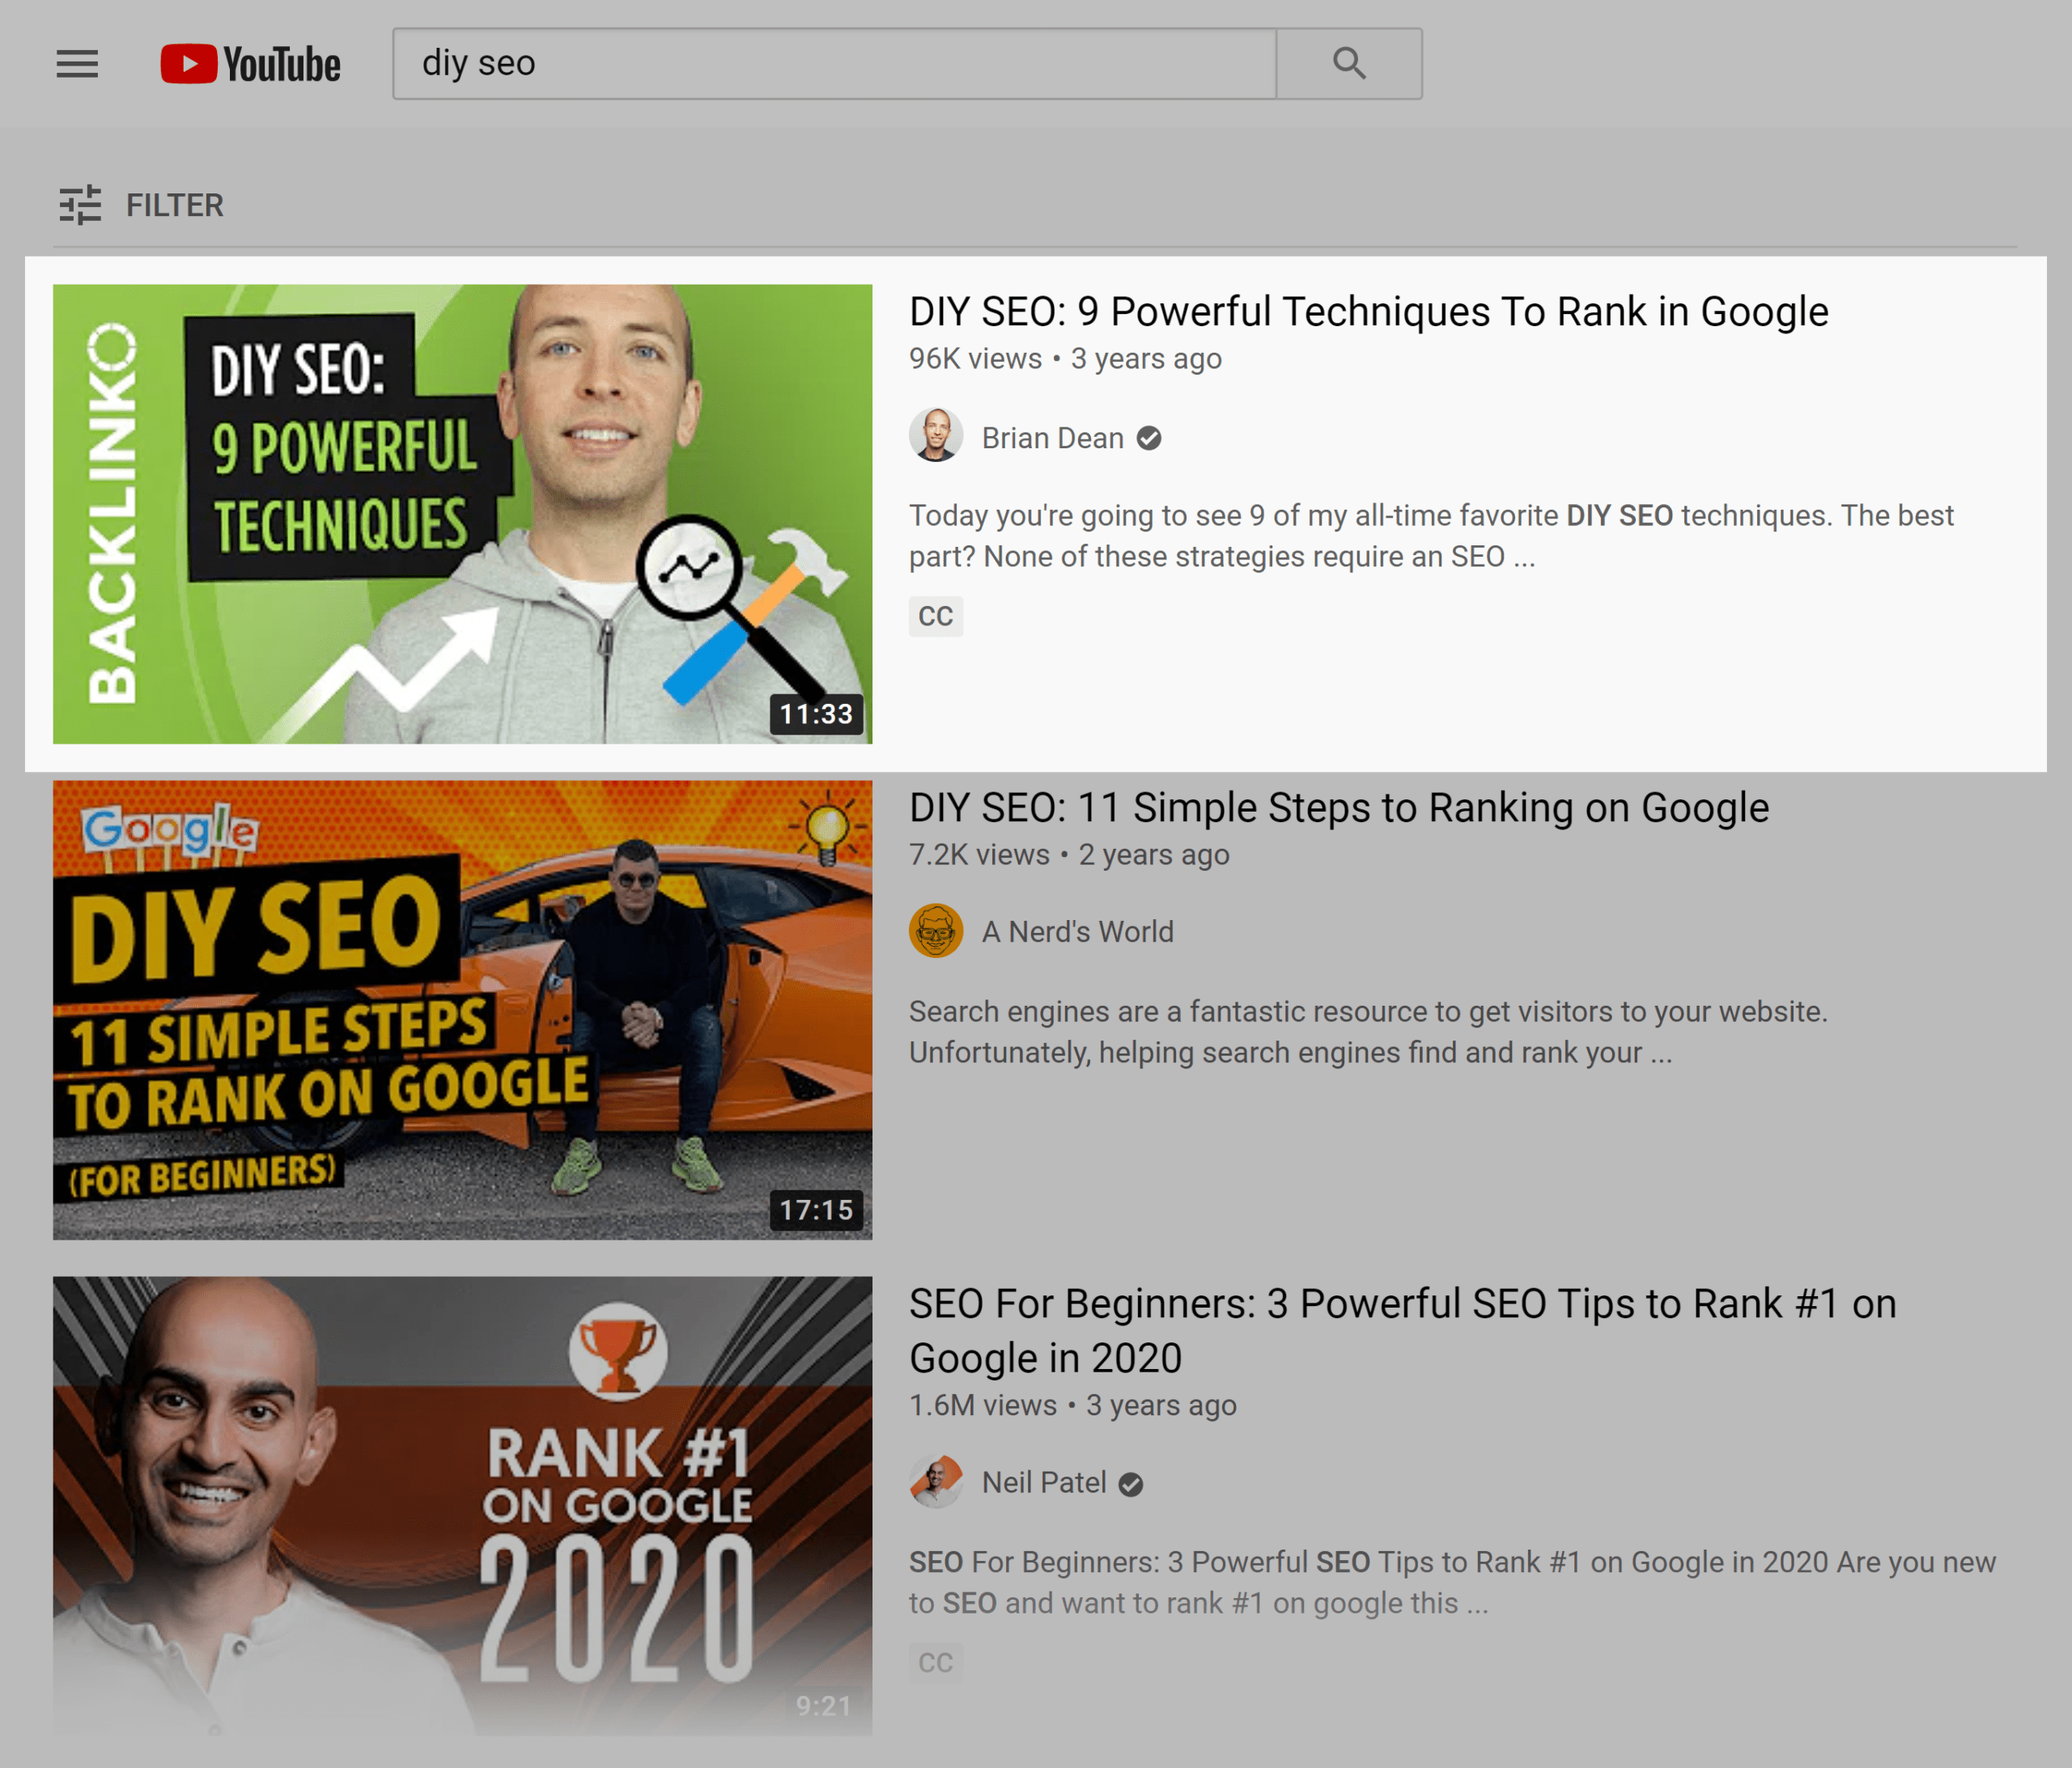 YouTube search results – DIY SEO